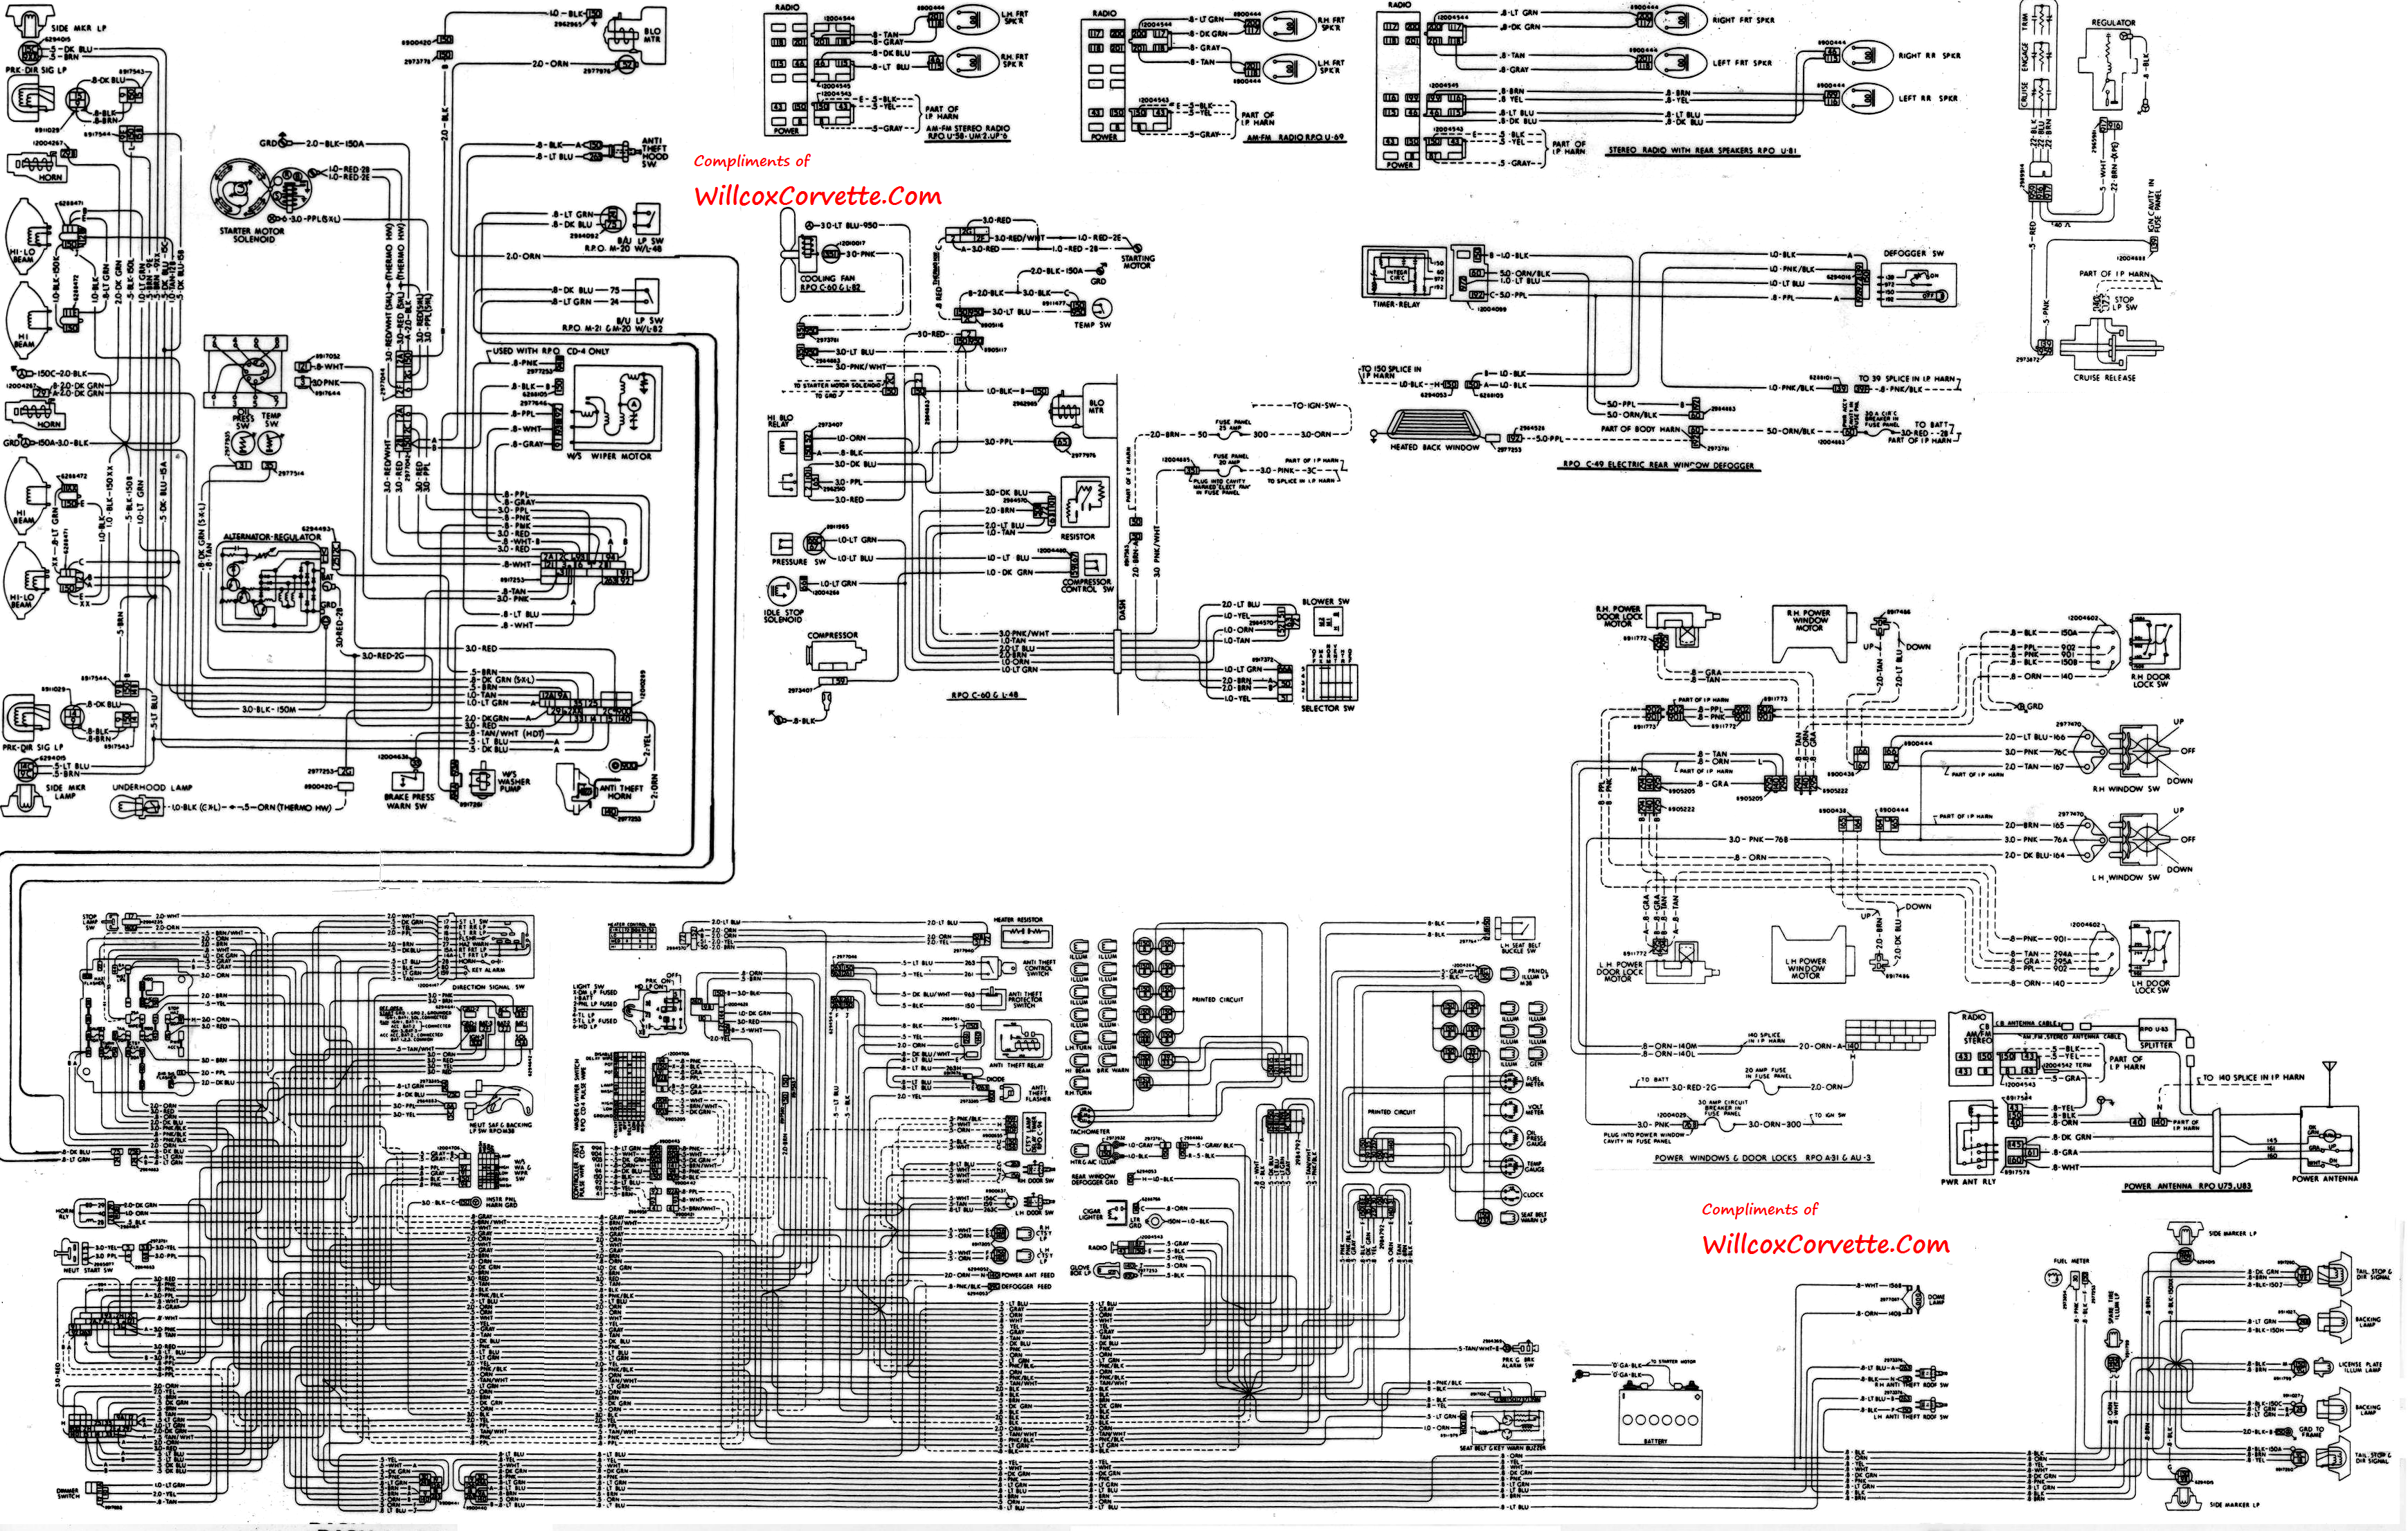 1979 wire diagram 1978 corvette wiring diagram 1978 corvette starter wiring diagram corvette electrical diagrams at mifinder.co